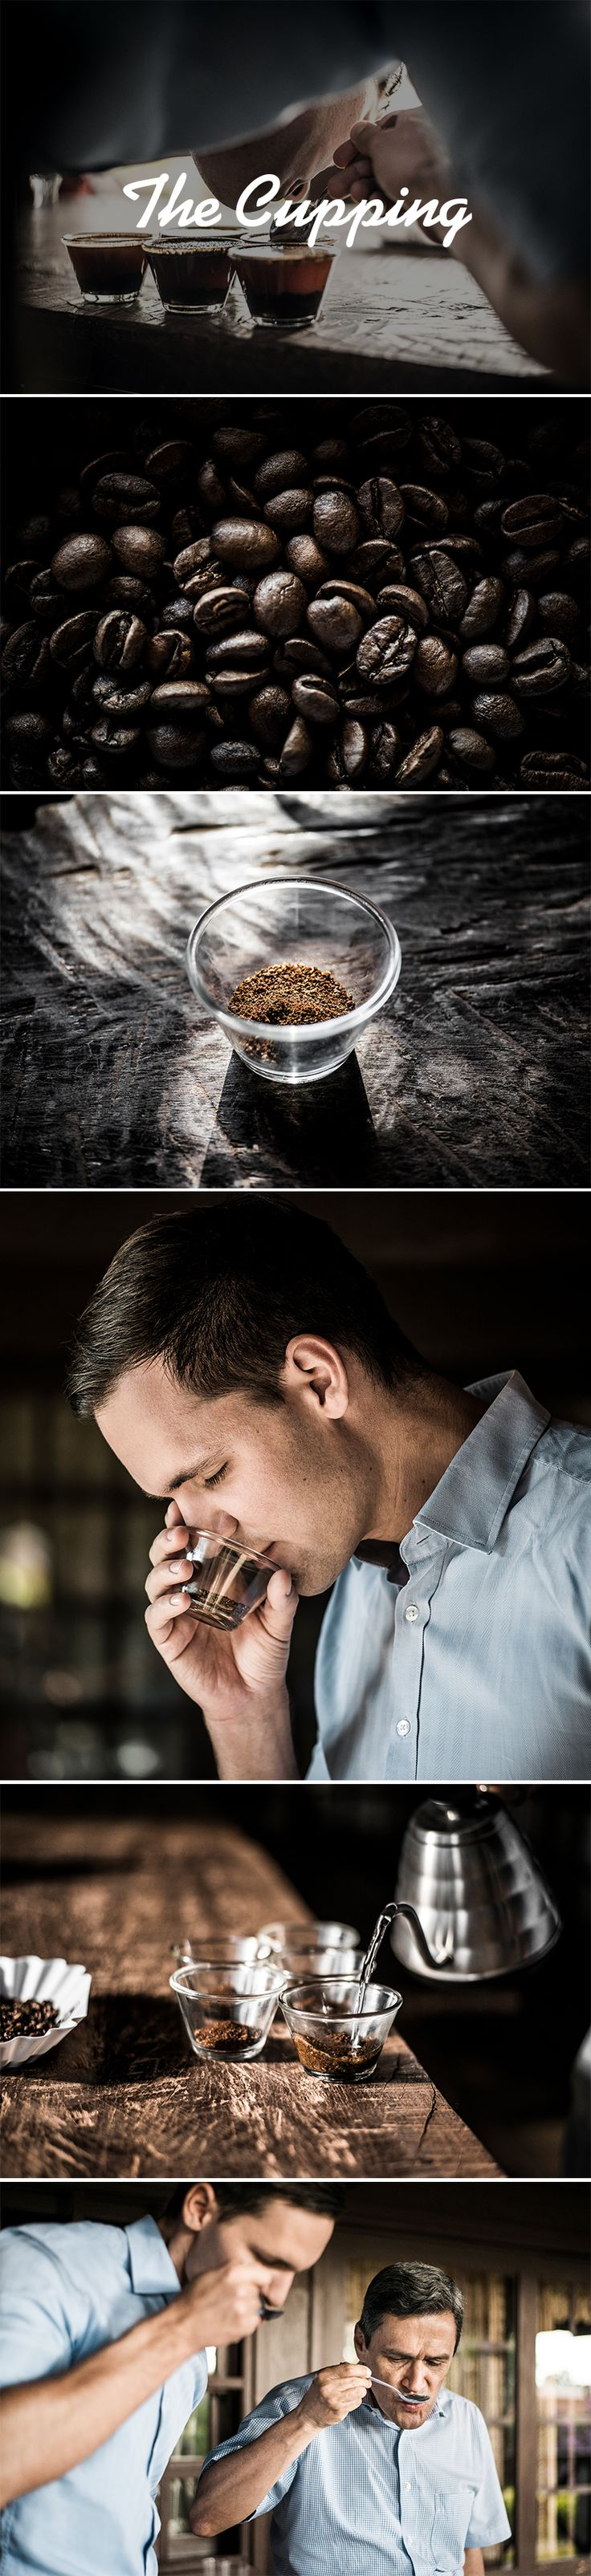 Pick up your spoons! Let's cup some direct trade speciality coffee. It's all about smelling, tasting and slurping. ;)   Do you want to try it? Check out http://www.jhornig.com/shop for our blends and single origin coffees.